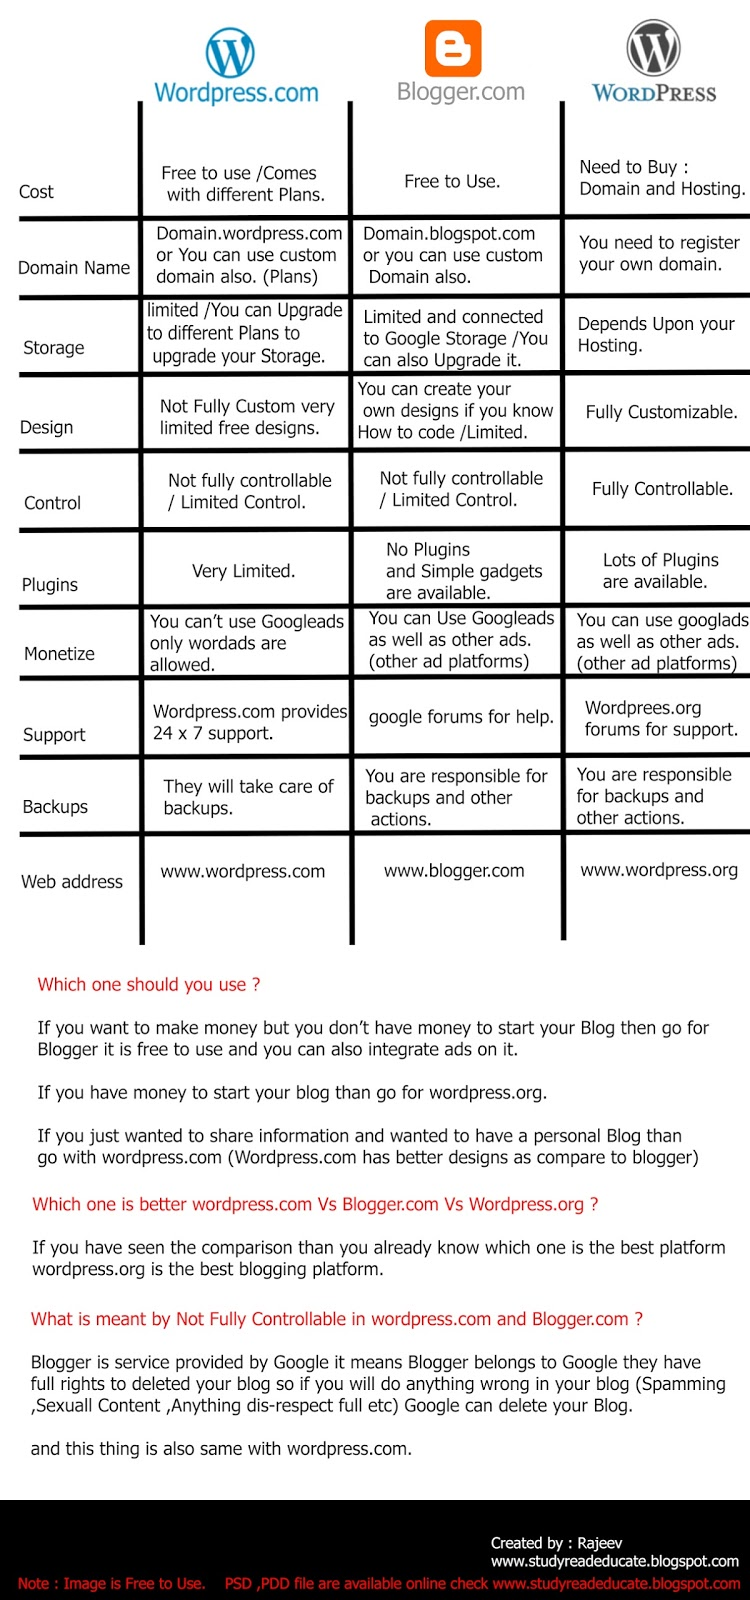 Blog Blogspot Wordpress Comparison Between Wordpress Blogger And Wordpress Org